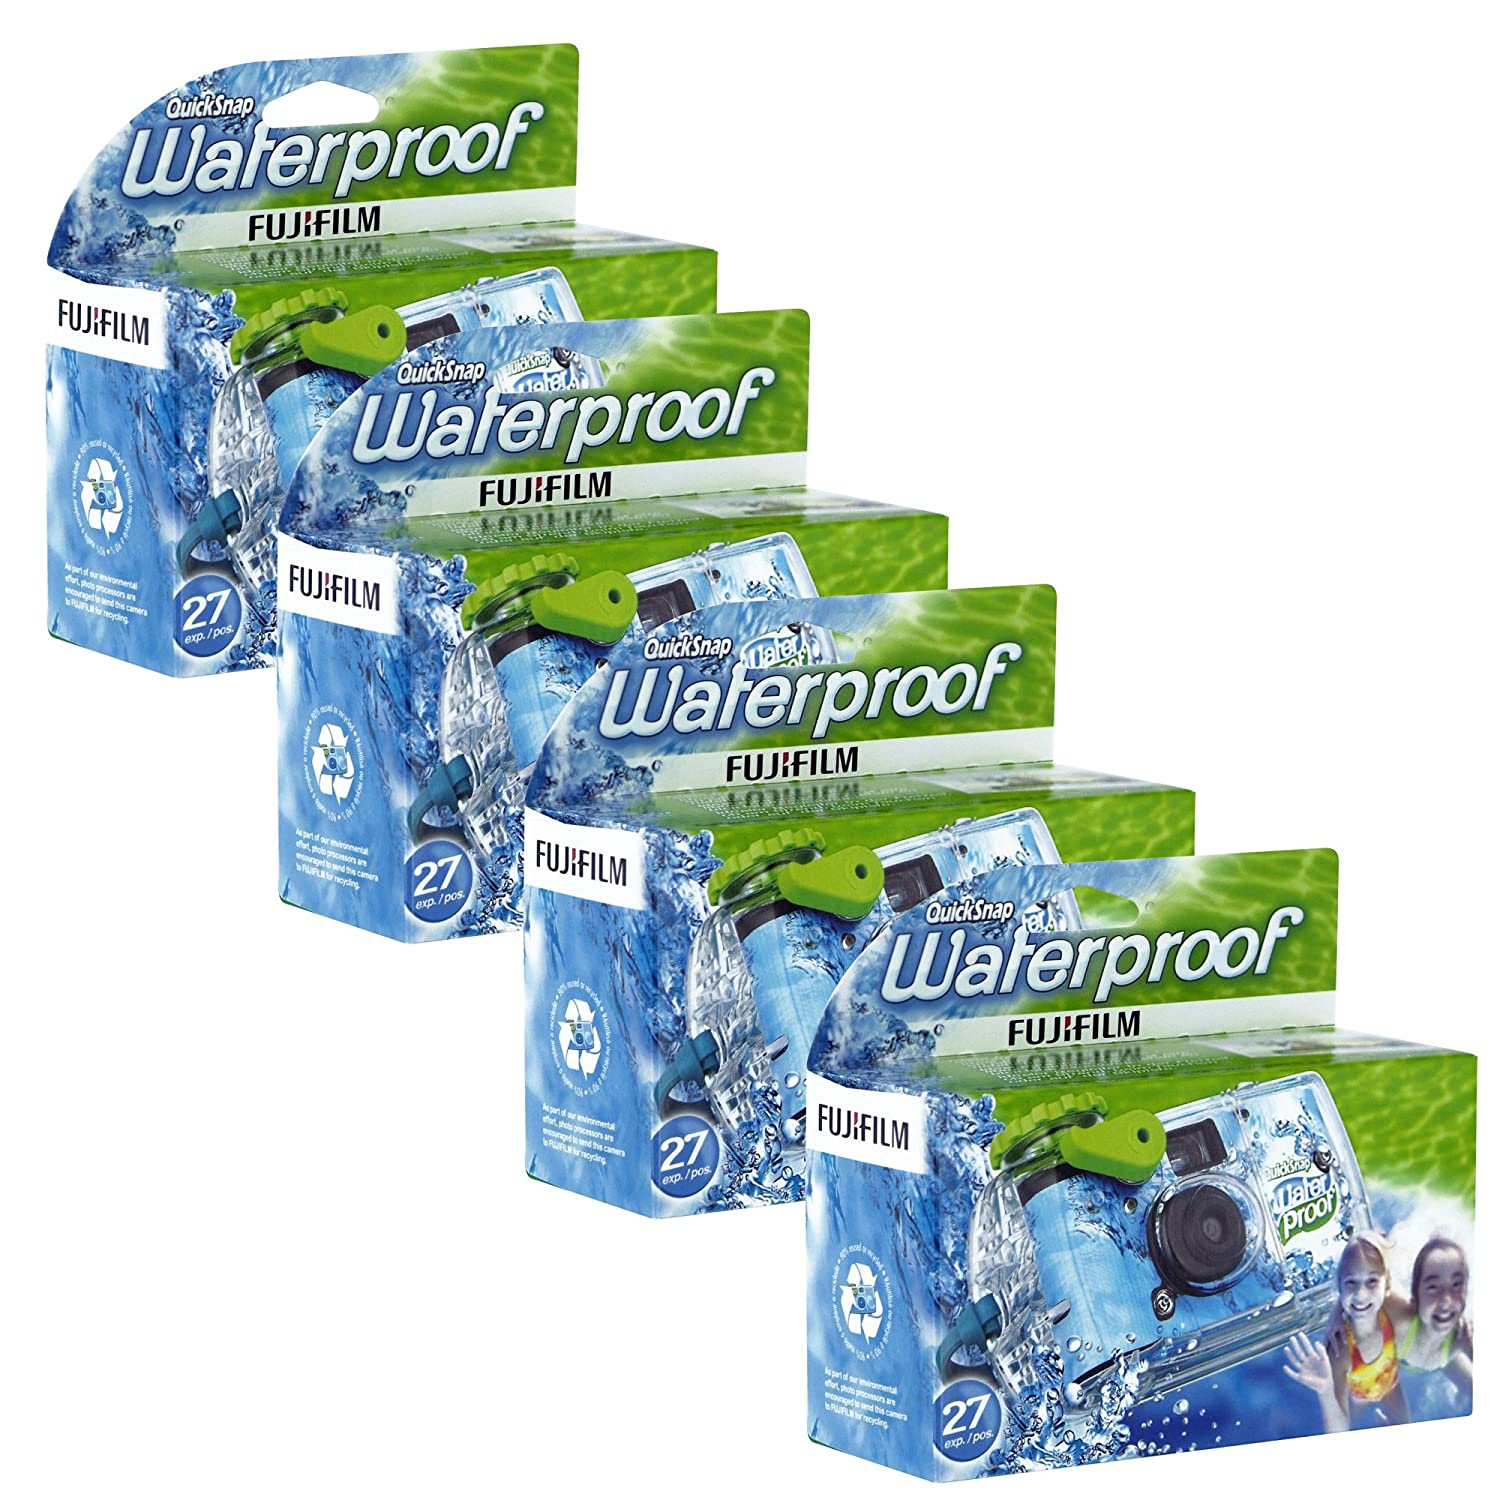 Fujifilm fqsuw4 Quick Snap Waterproof 35mm Single Use Camera, 4 Pack (Blue/Green/White)